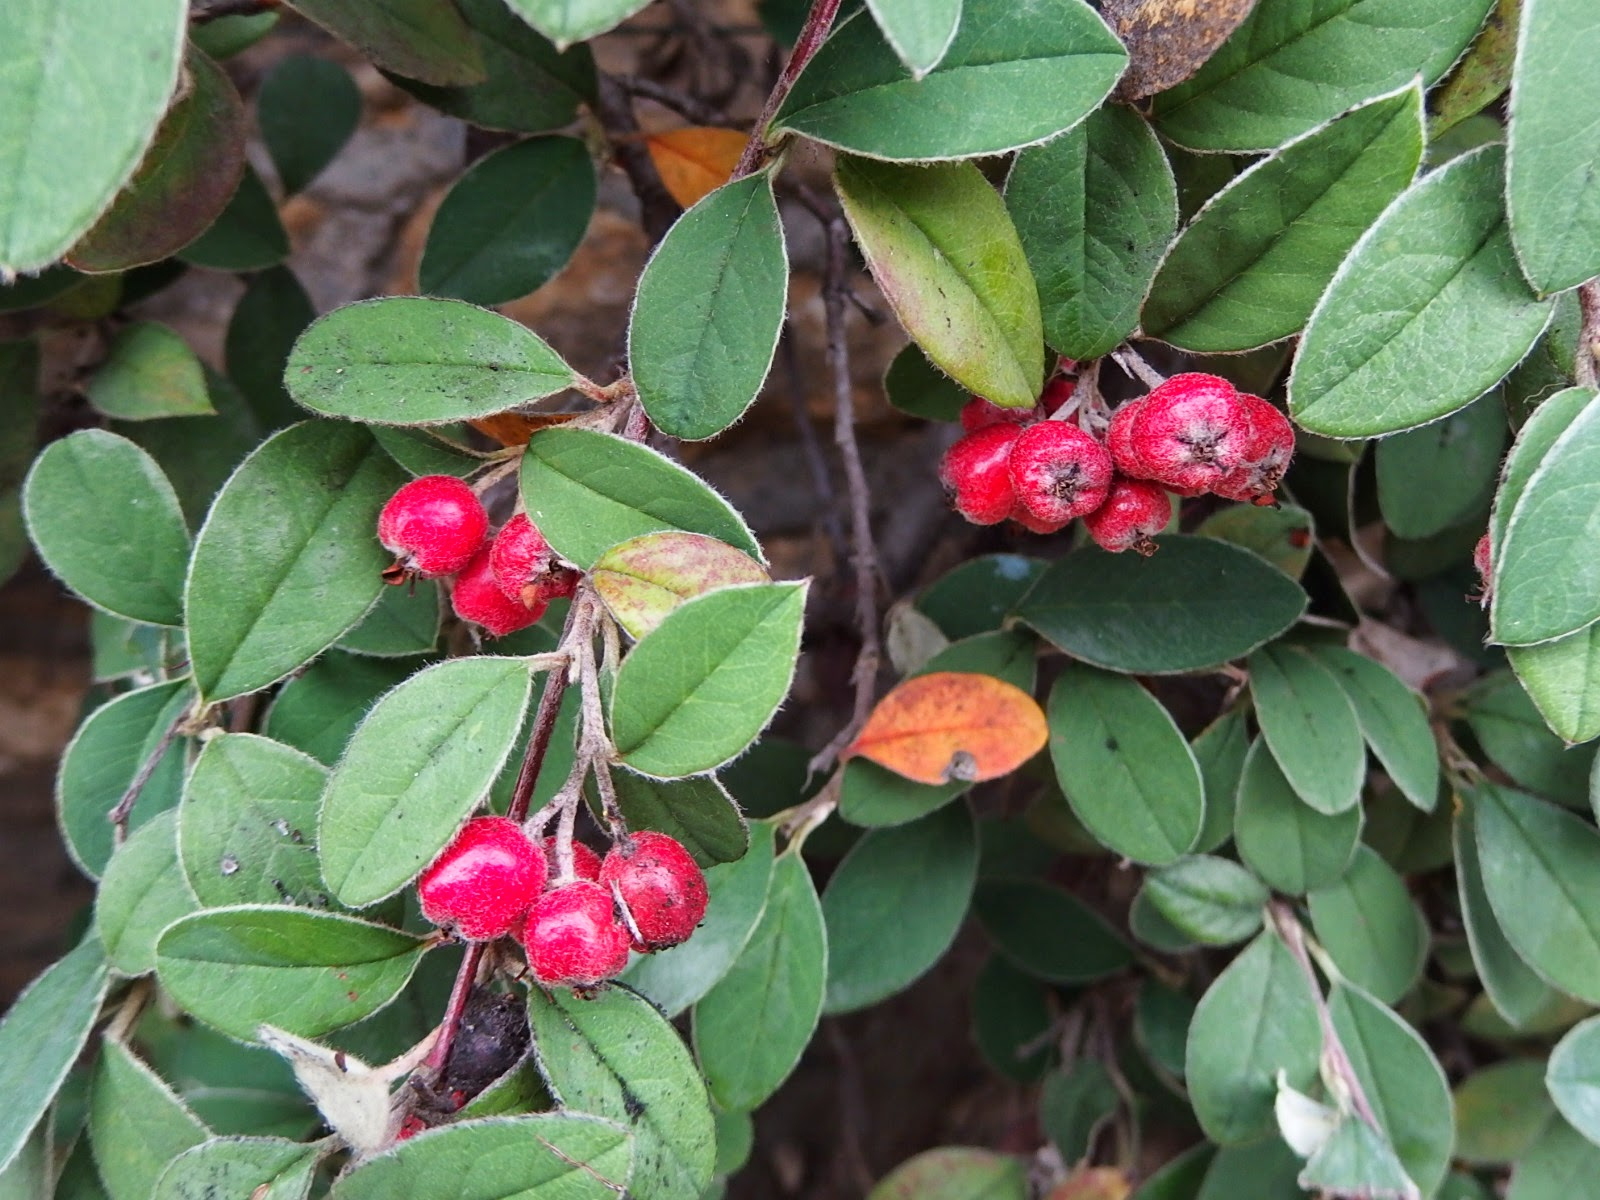 Close-up of the cotoneaster showing leaves and berries